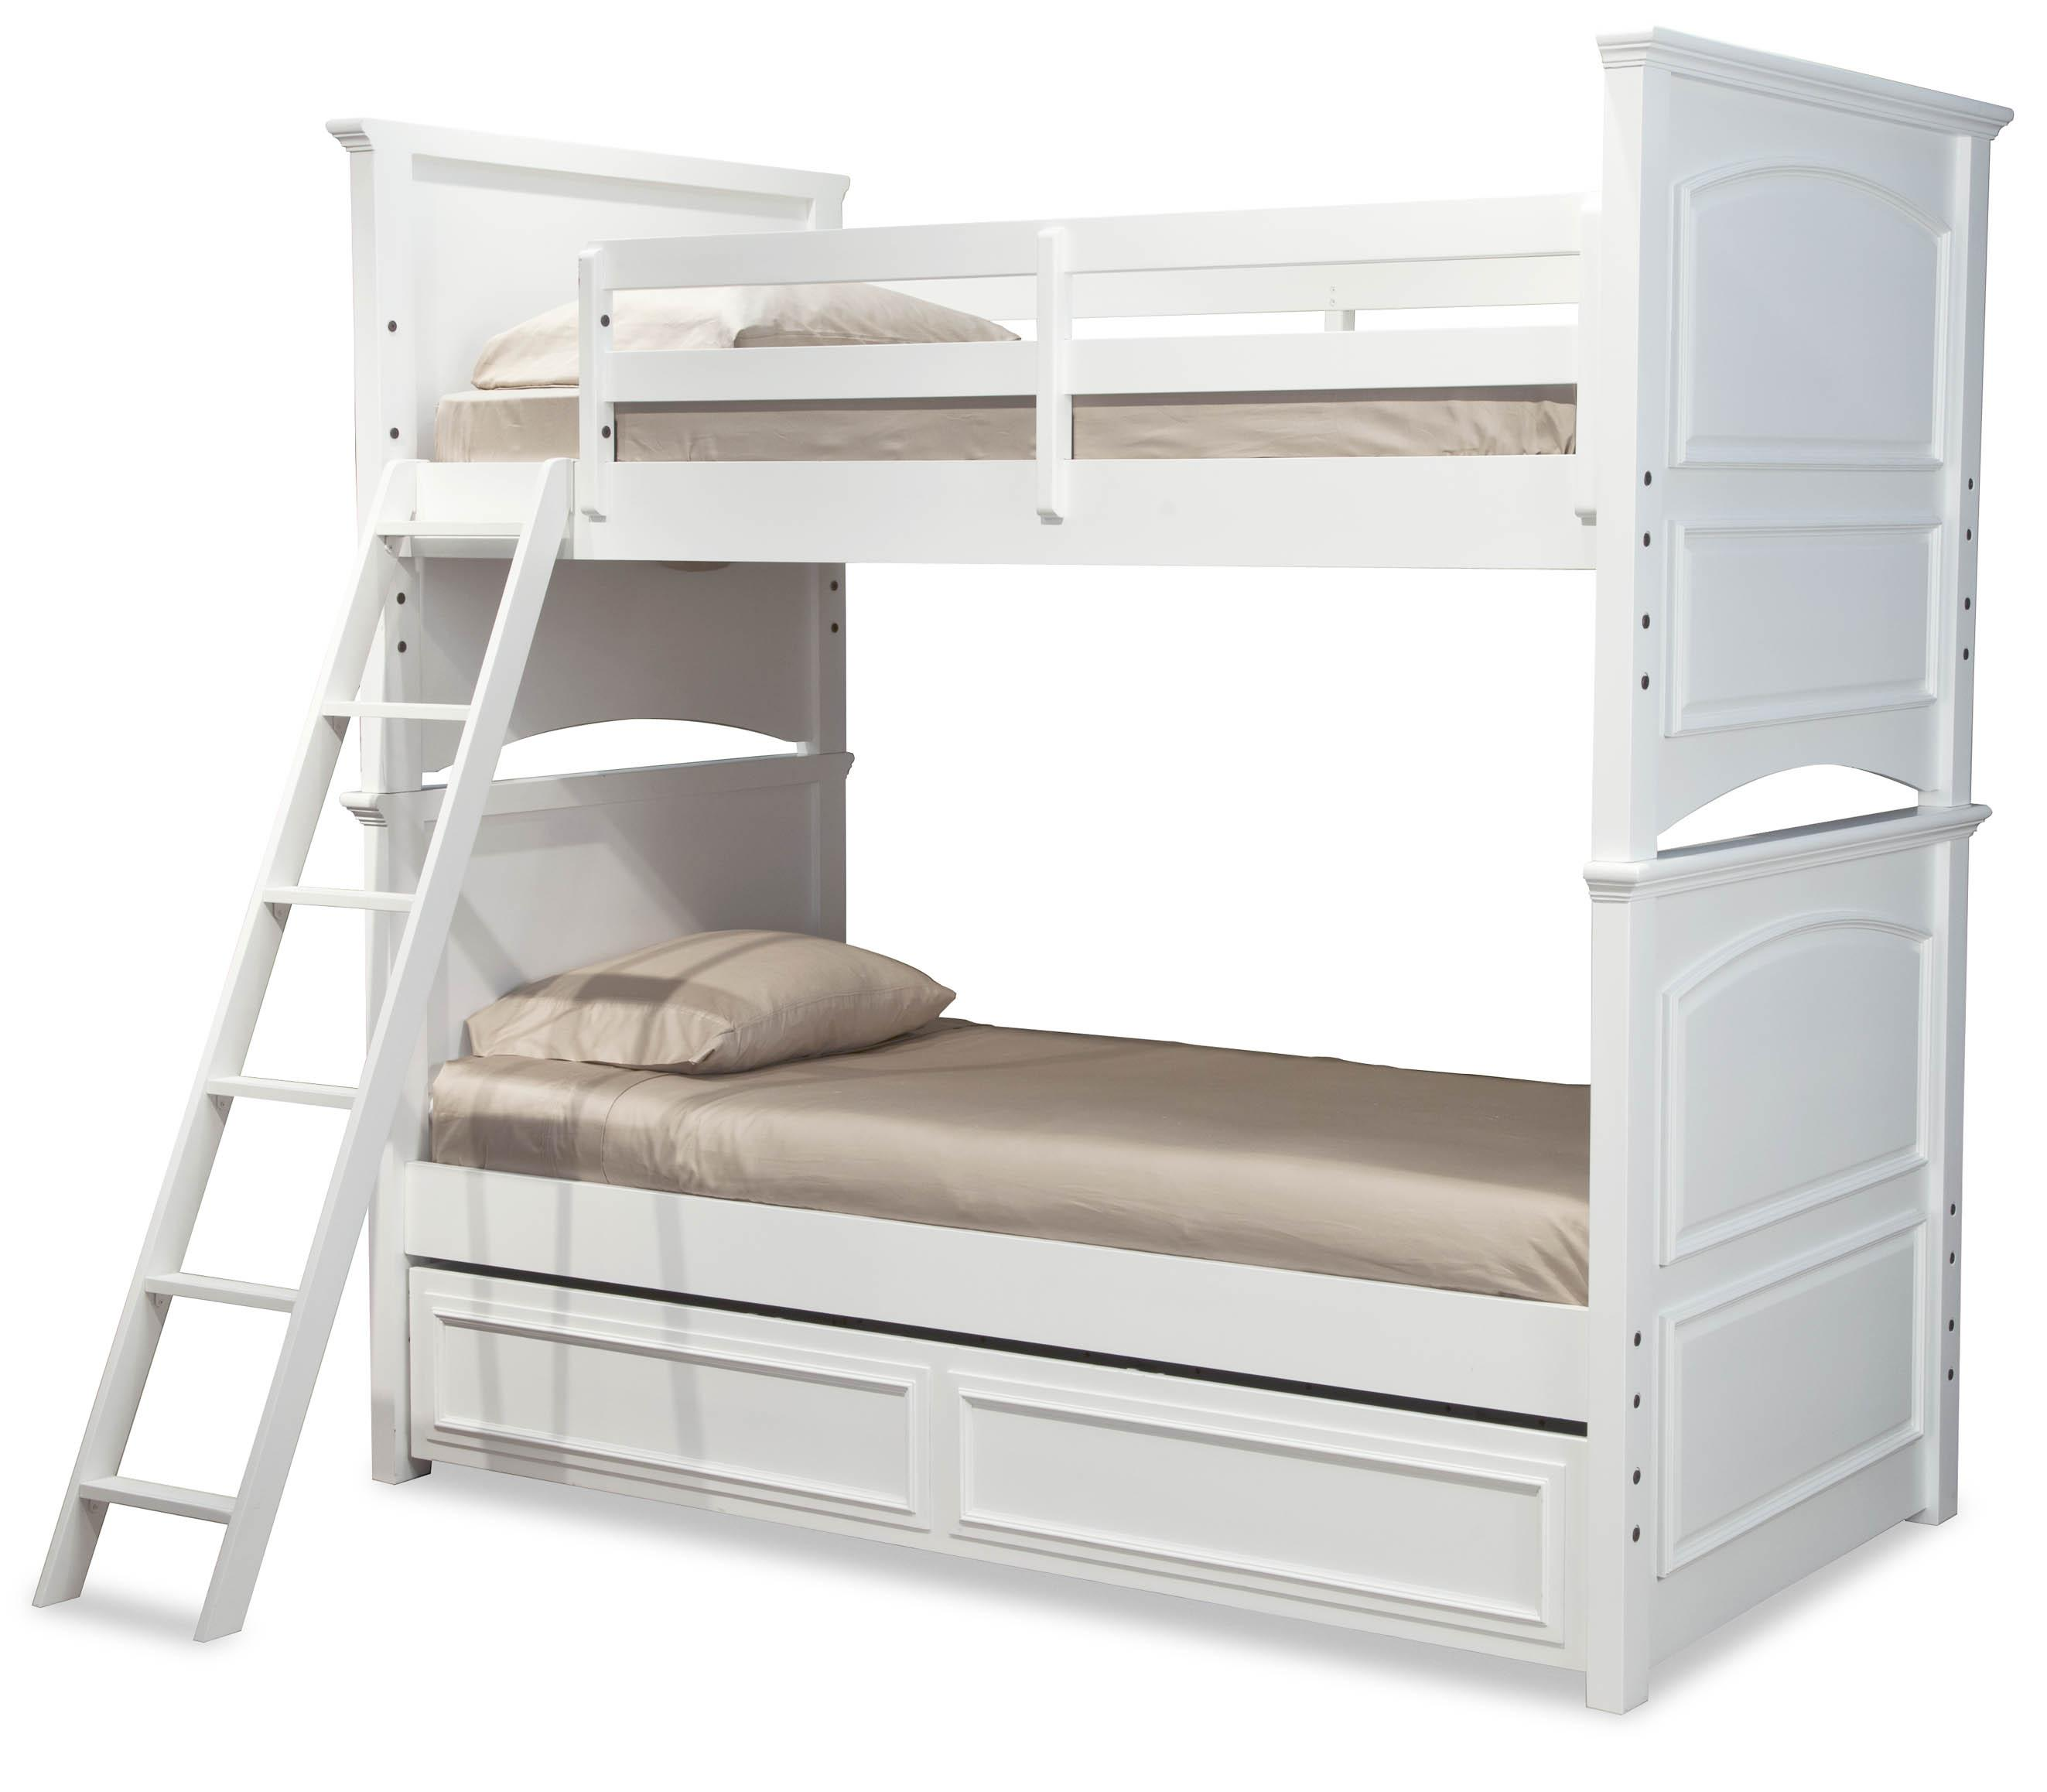 Madison Complete Twin over Full Bunk Bed w/ Trundle by Legacy Classic Kids at Suburban Furniture